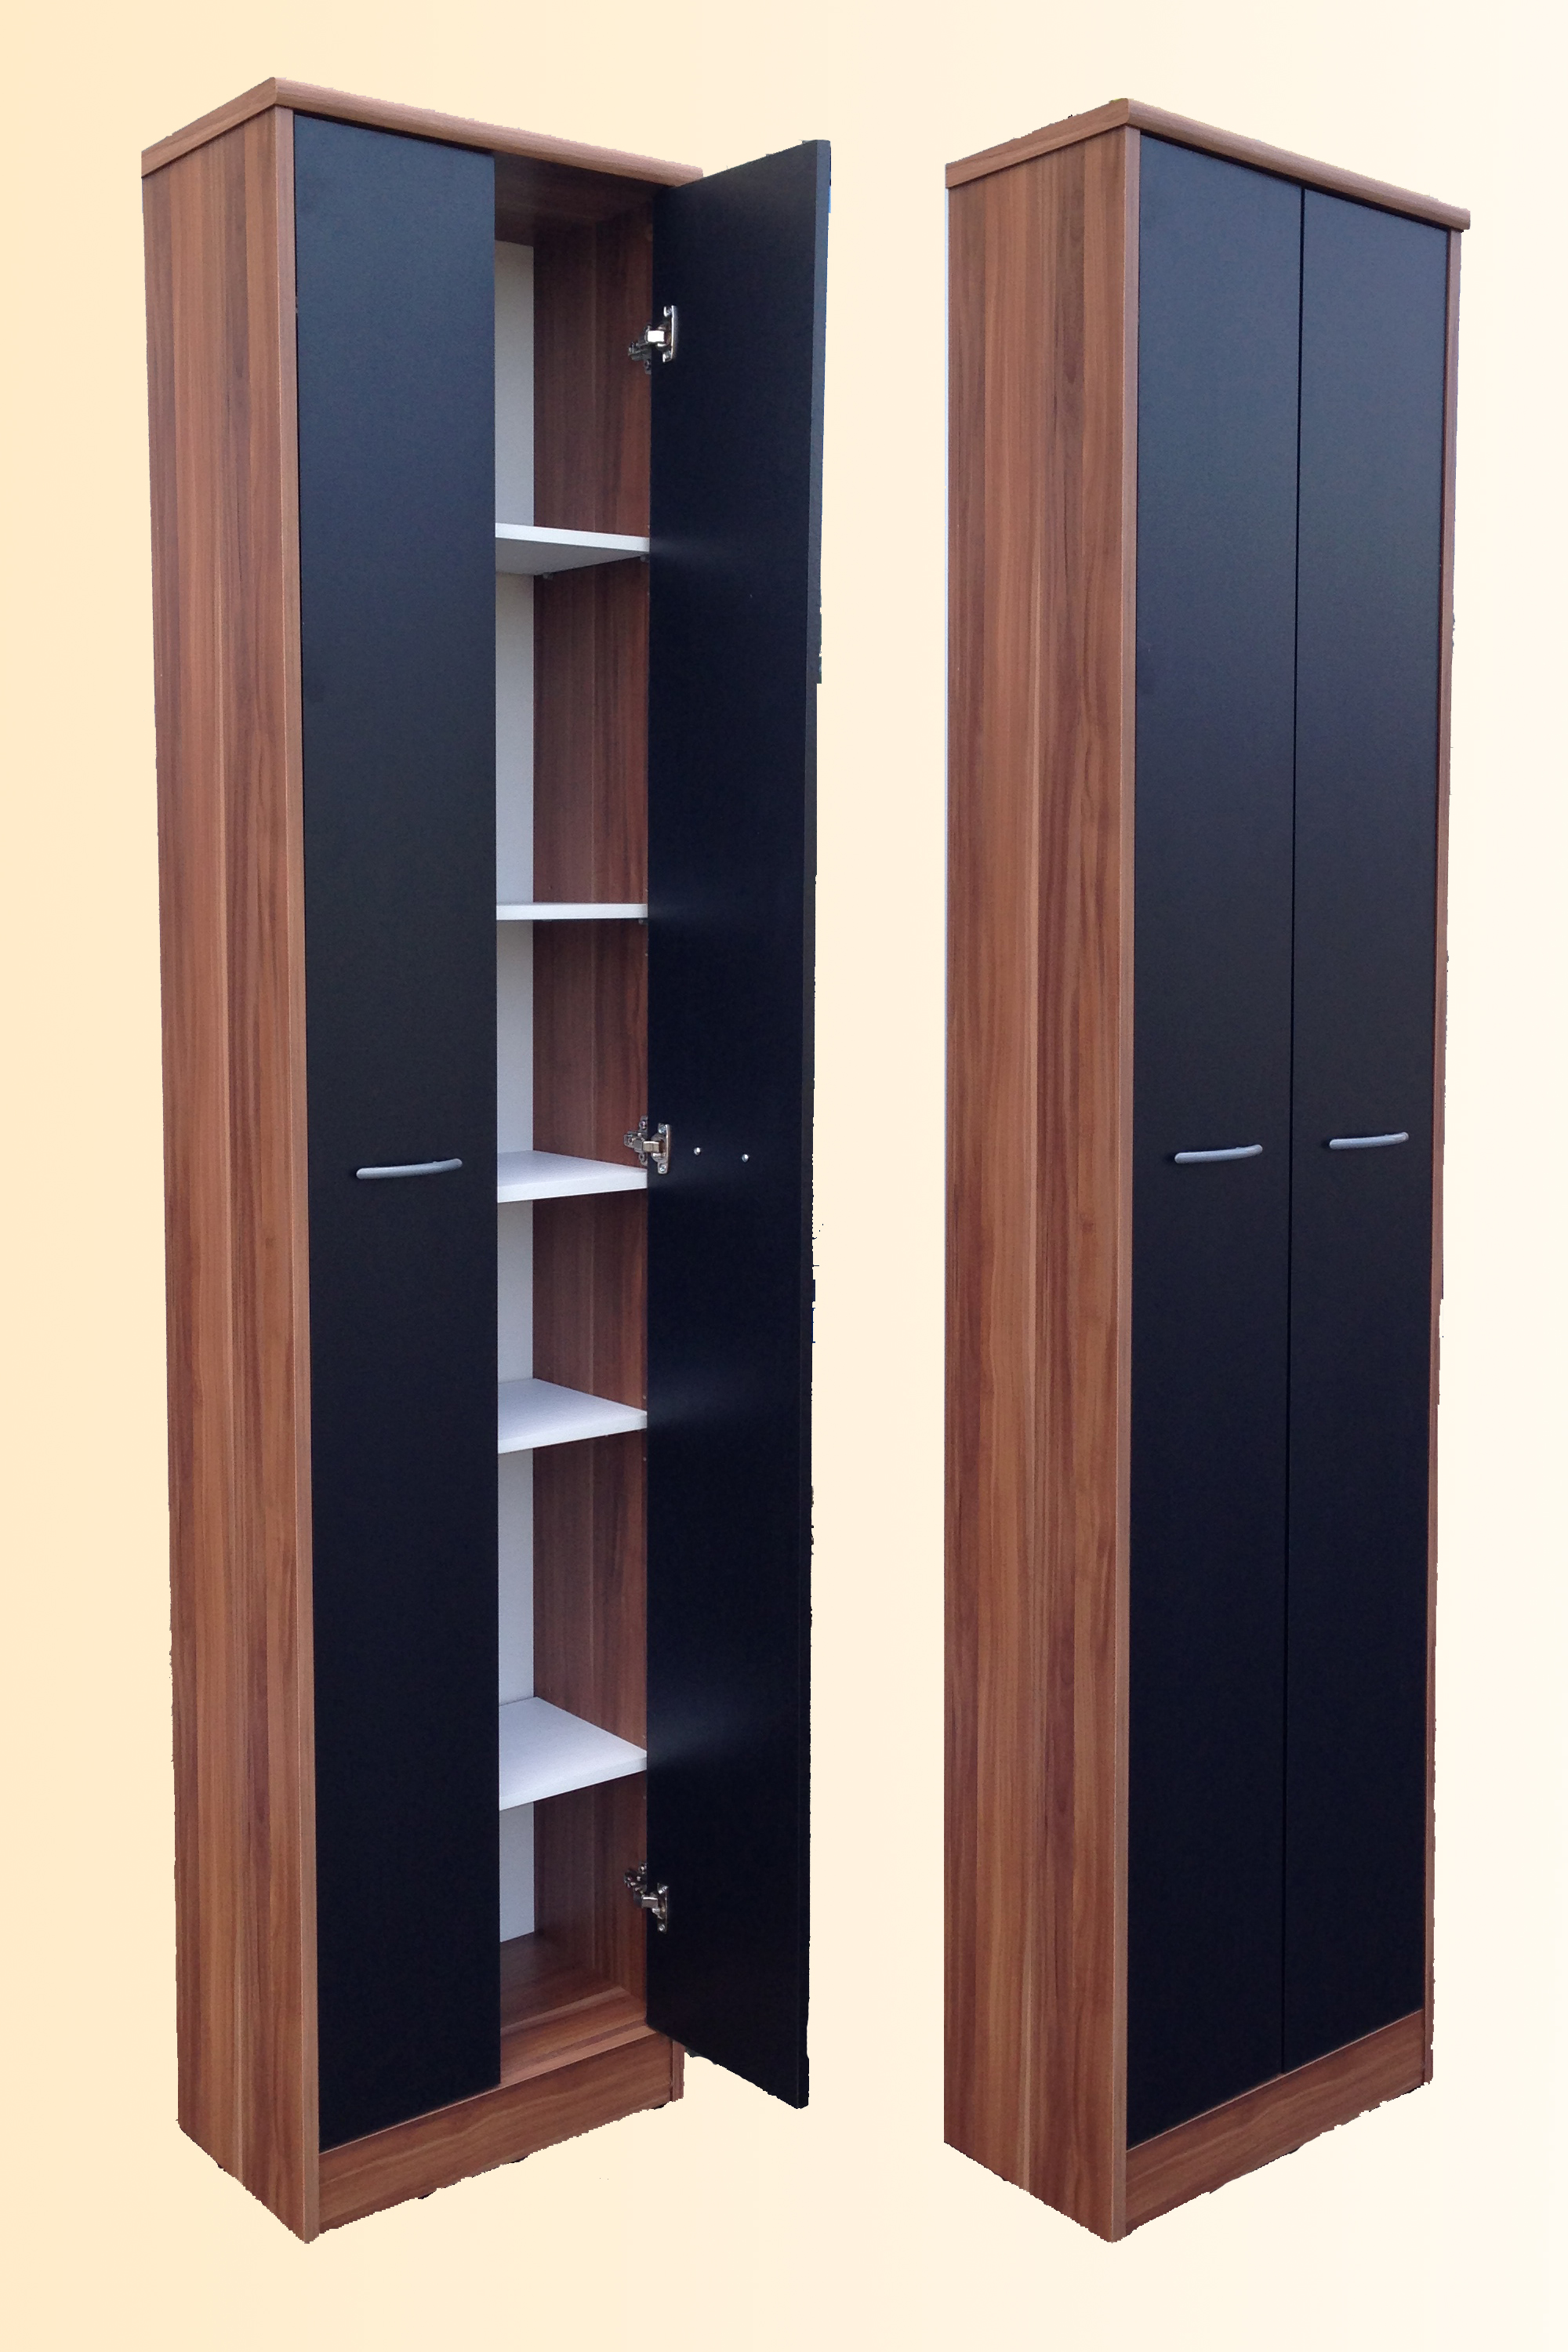 mehrzweckschrank 2 t rig aktenschrank schrank flur mod so161 nussbaum schwarz ebay. Black Bedroom Furniture Sets. Home Design Ideas